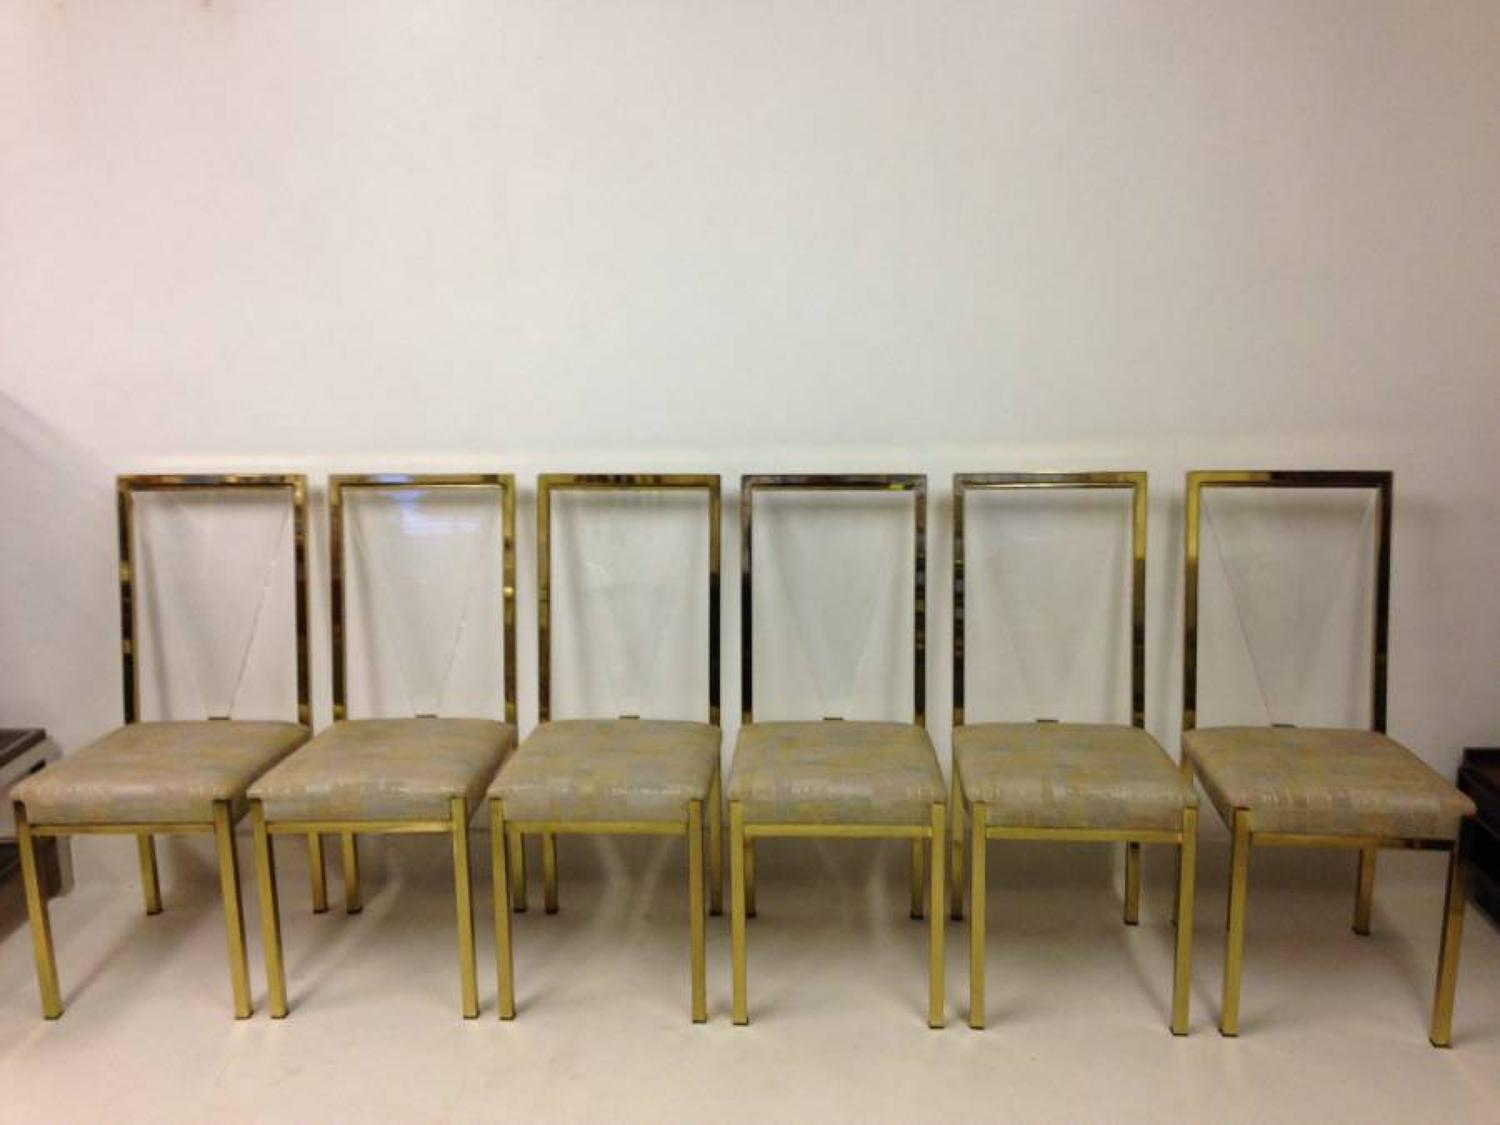 A set of lucite and gold lacquered metal chairs